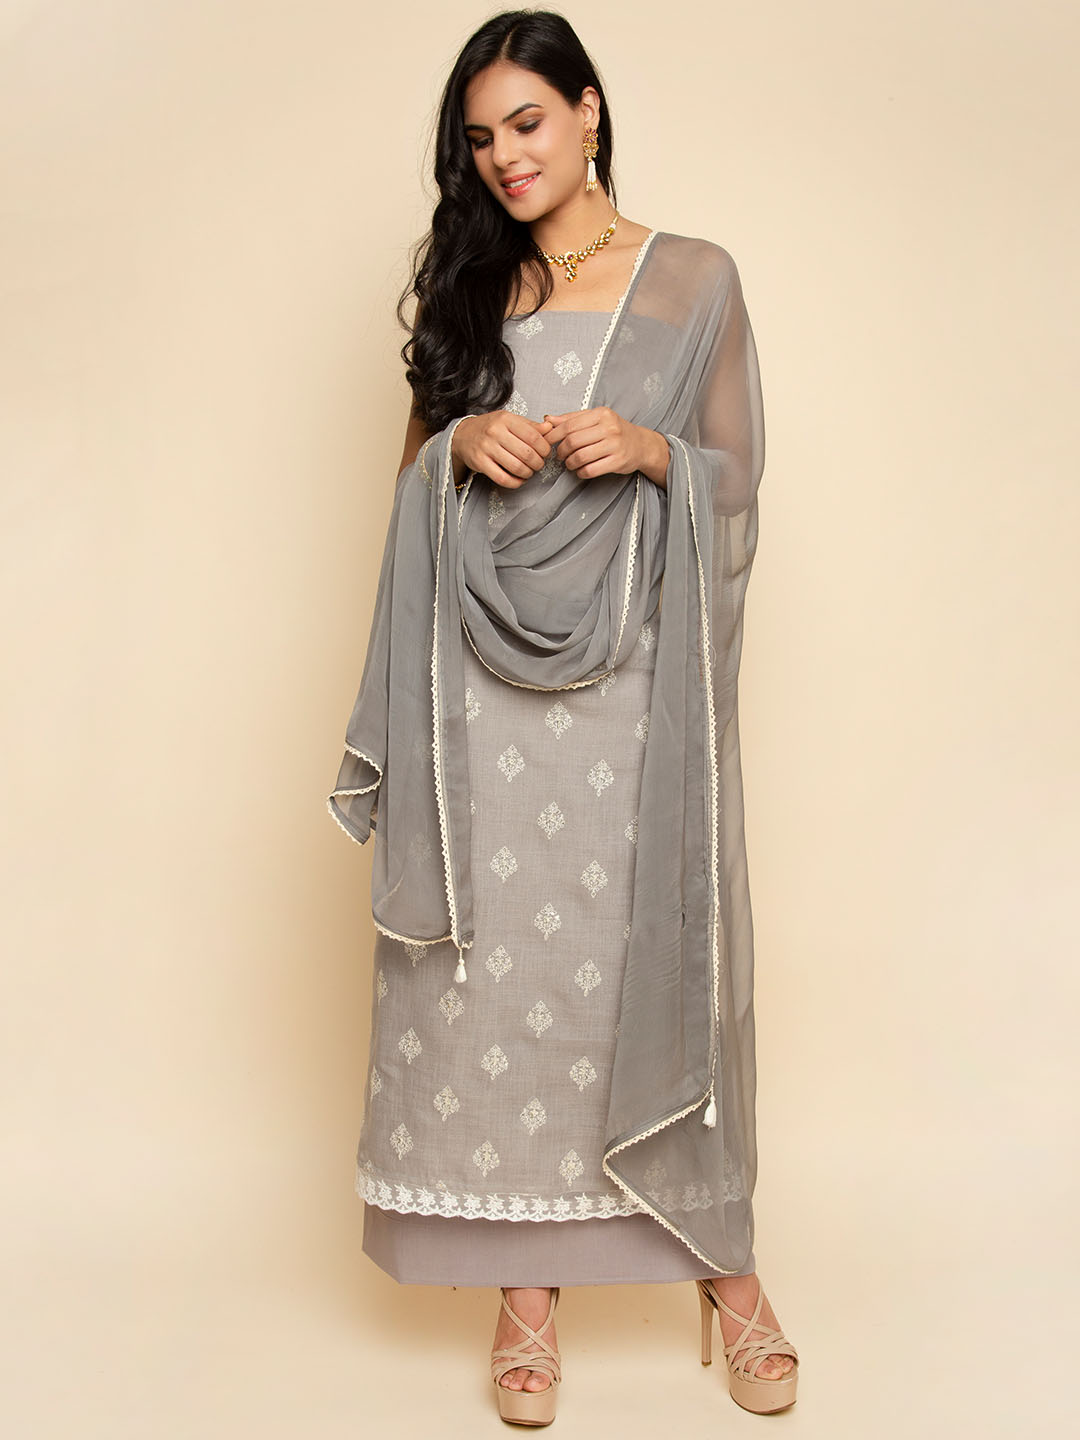 LINEN THREAD EMBROIDERY SUIT